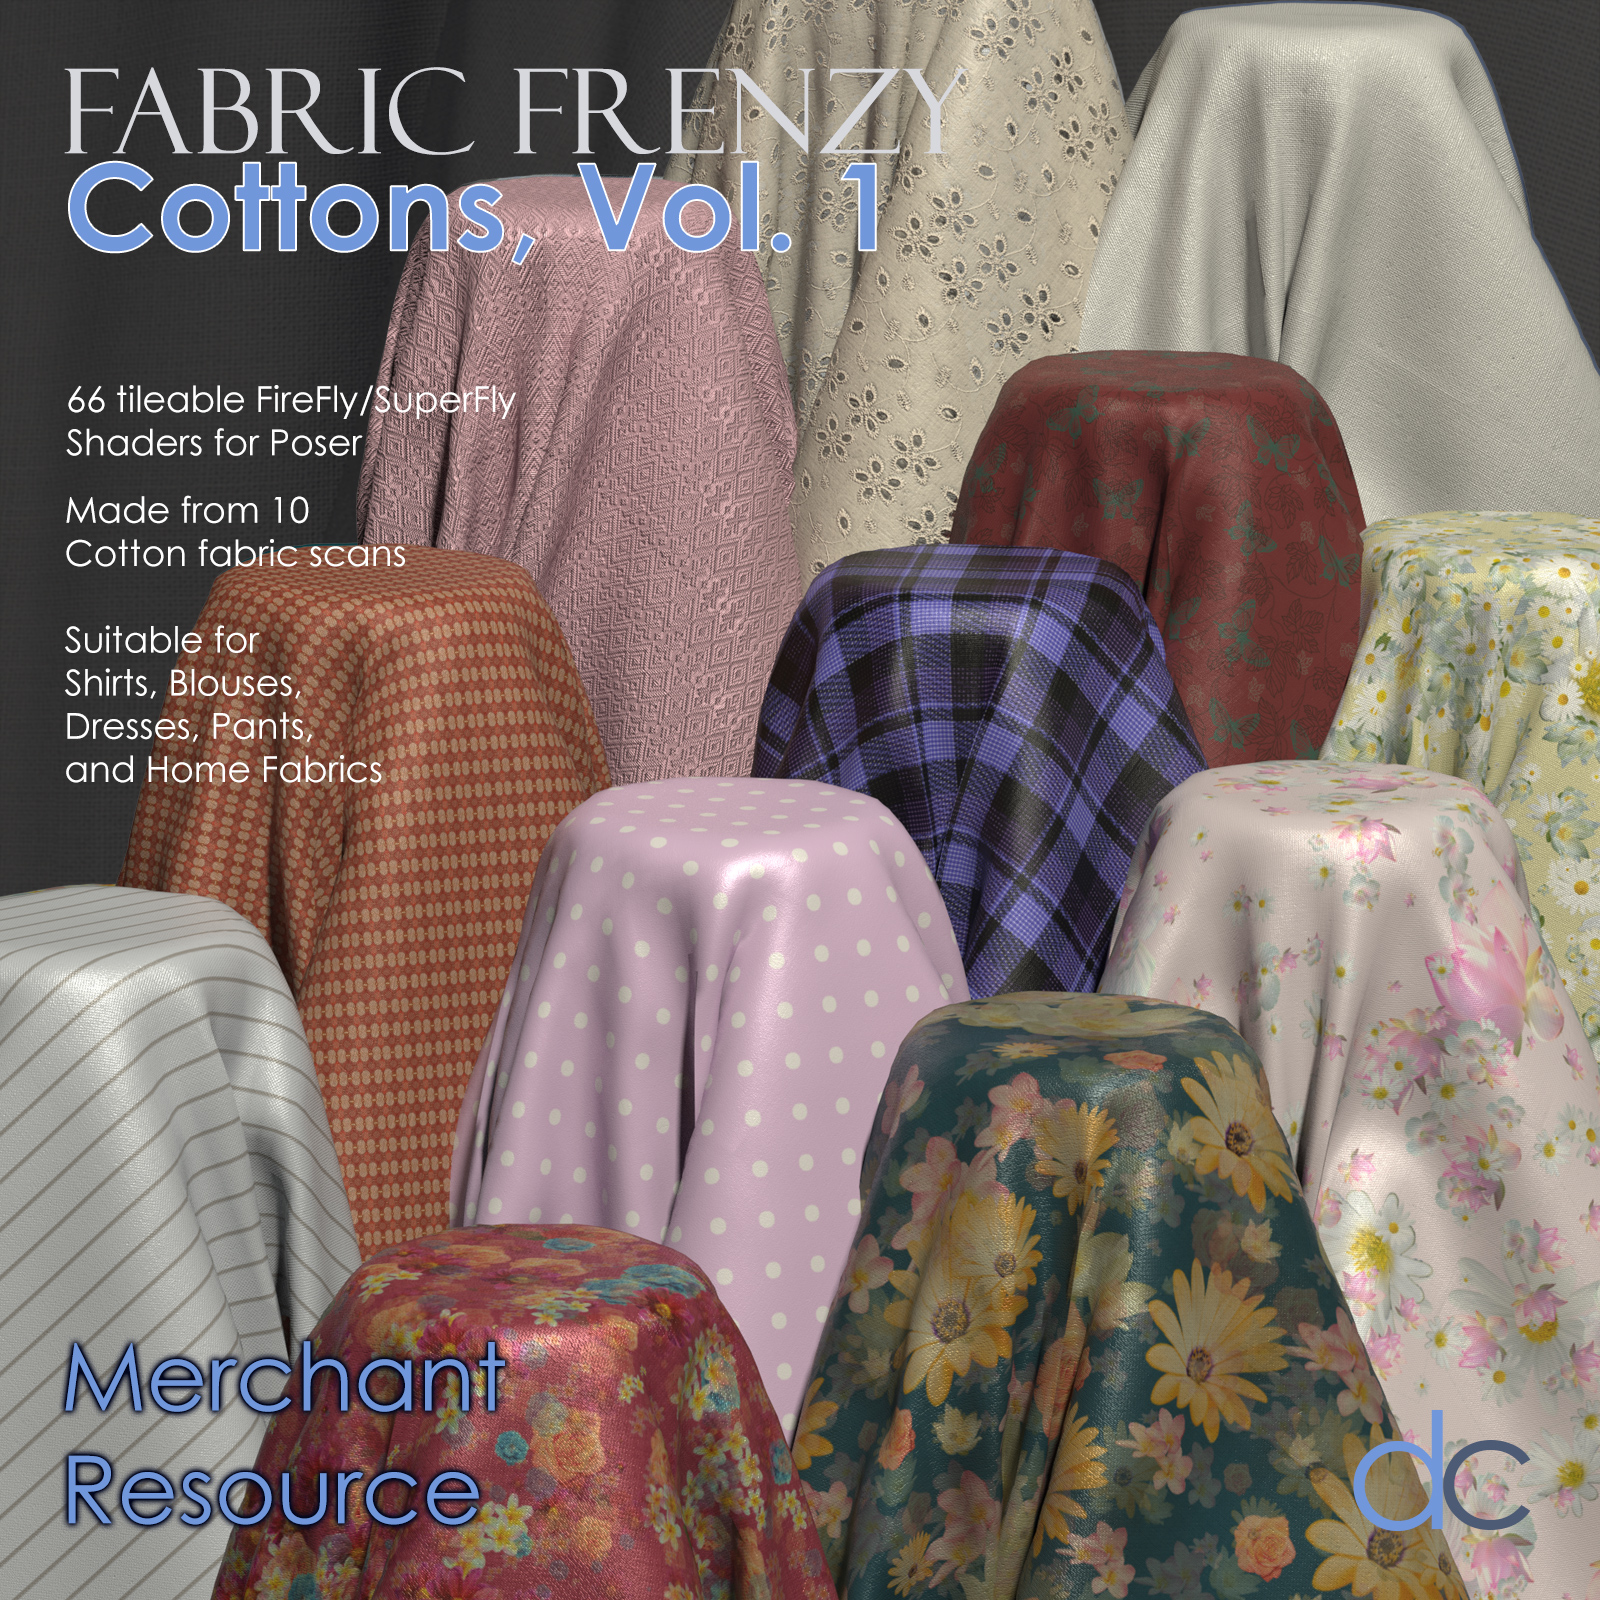 Fabric Frenzy: Cottons Vol 1 PBR Textures and Poser Shaders